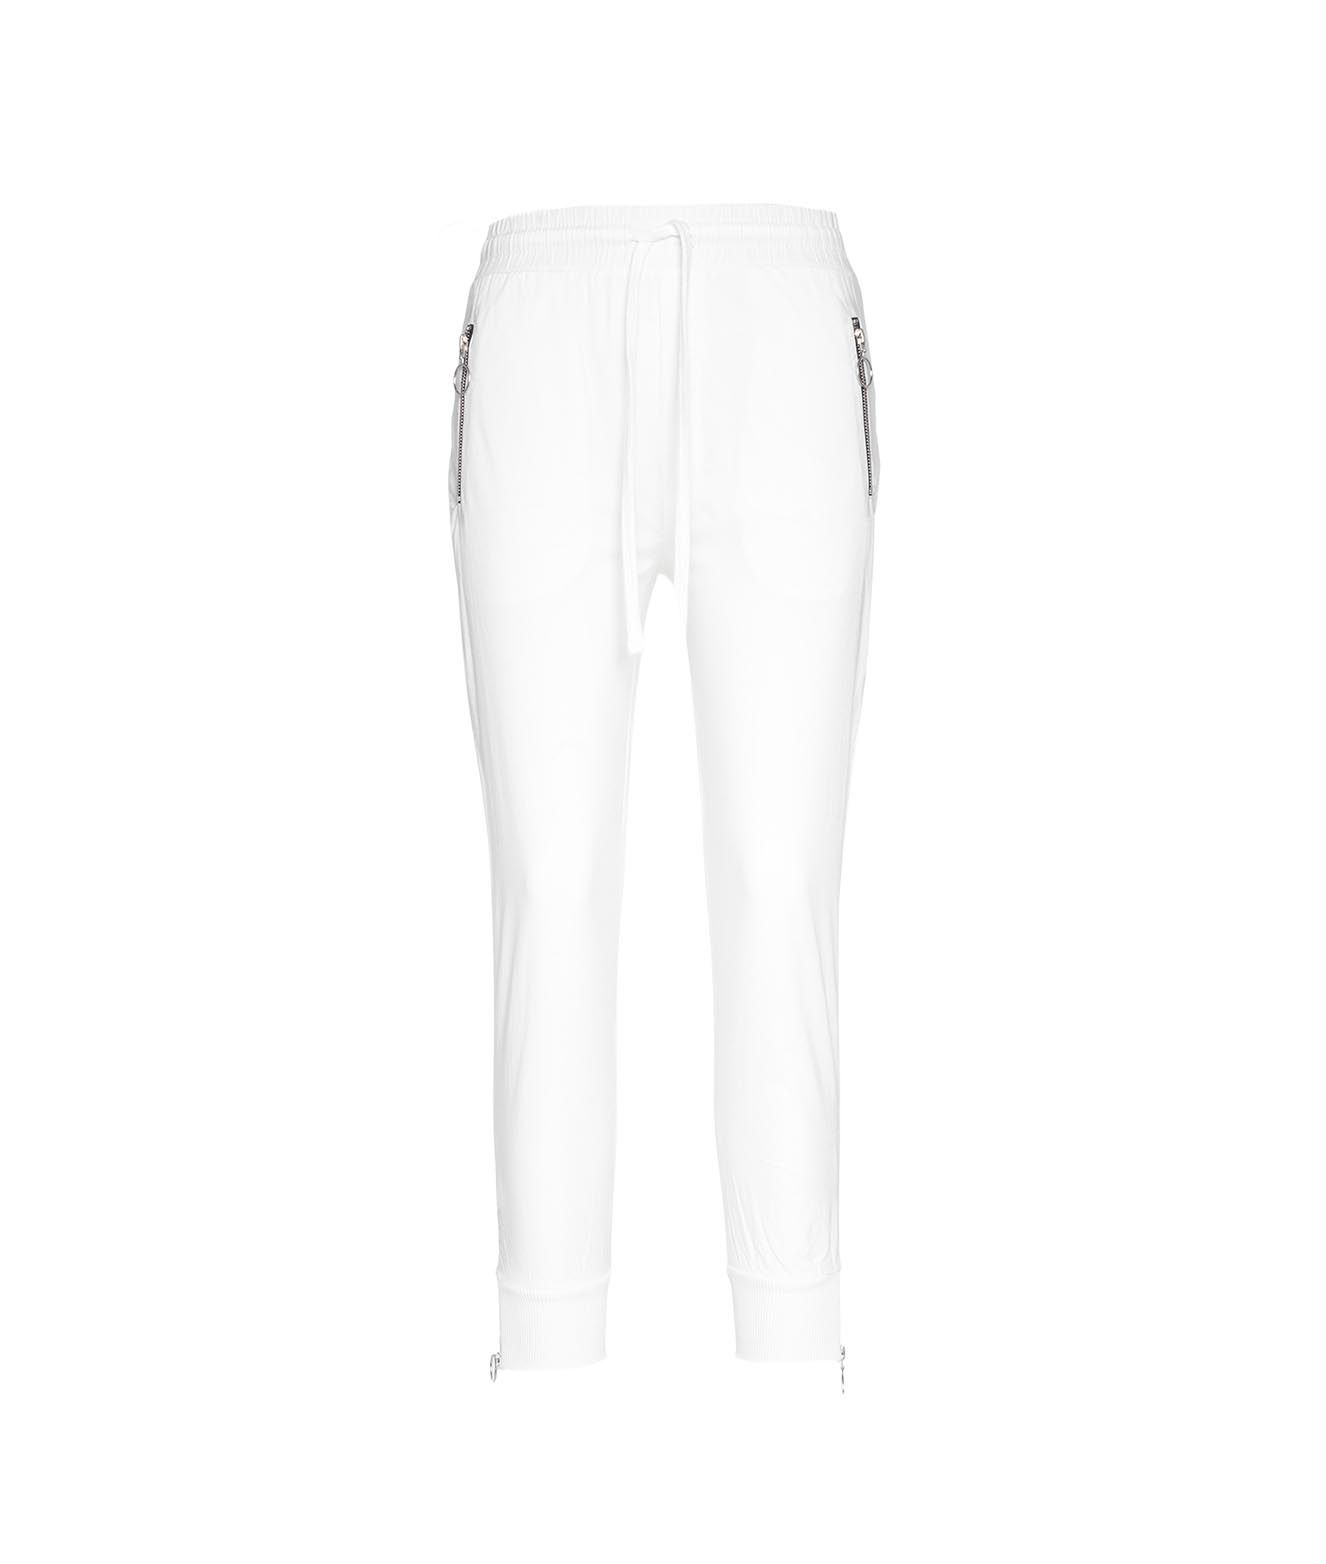 Thom Krom THOM KROM WOMEN'S WST25811WHITE WHITE OTHER MATERIALS PANTS